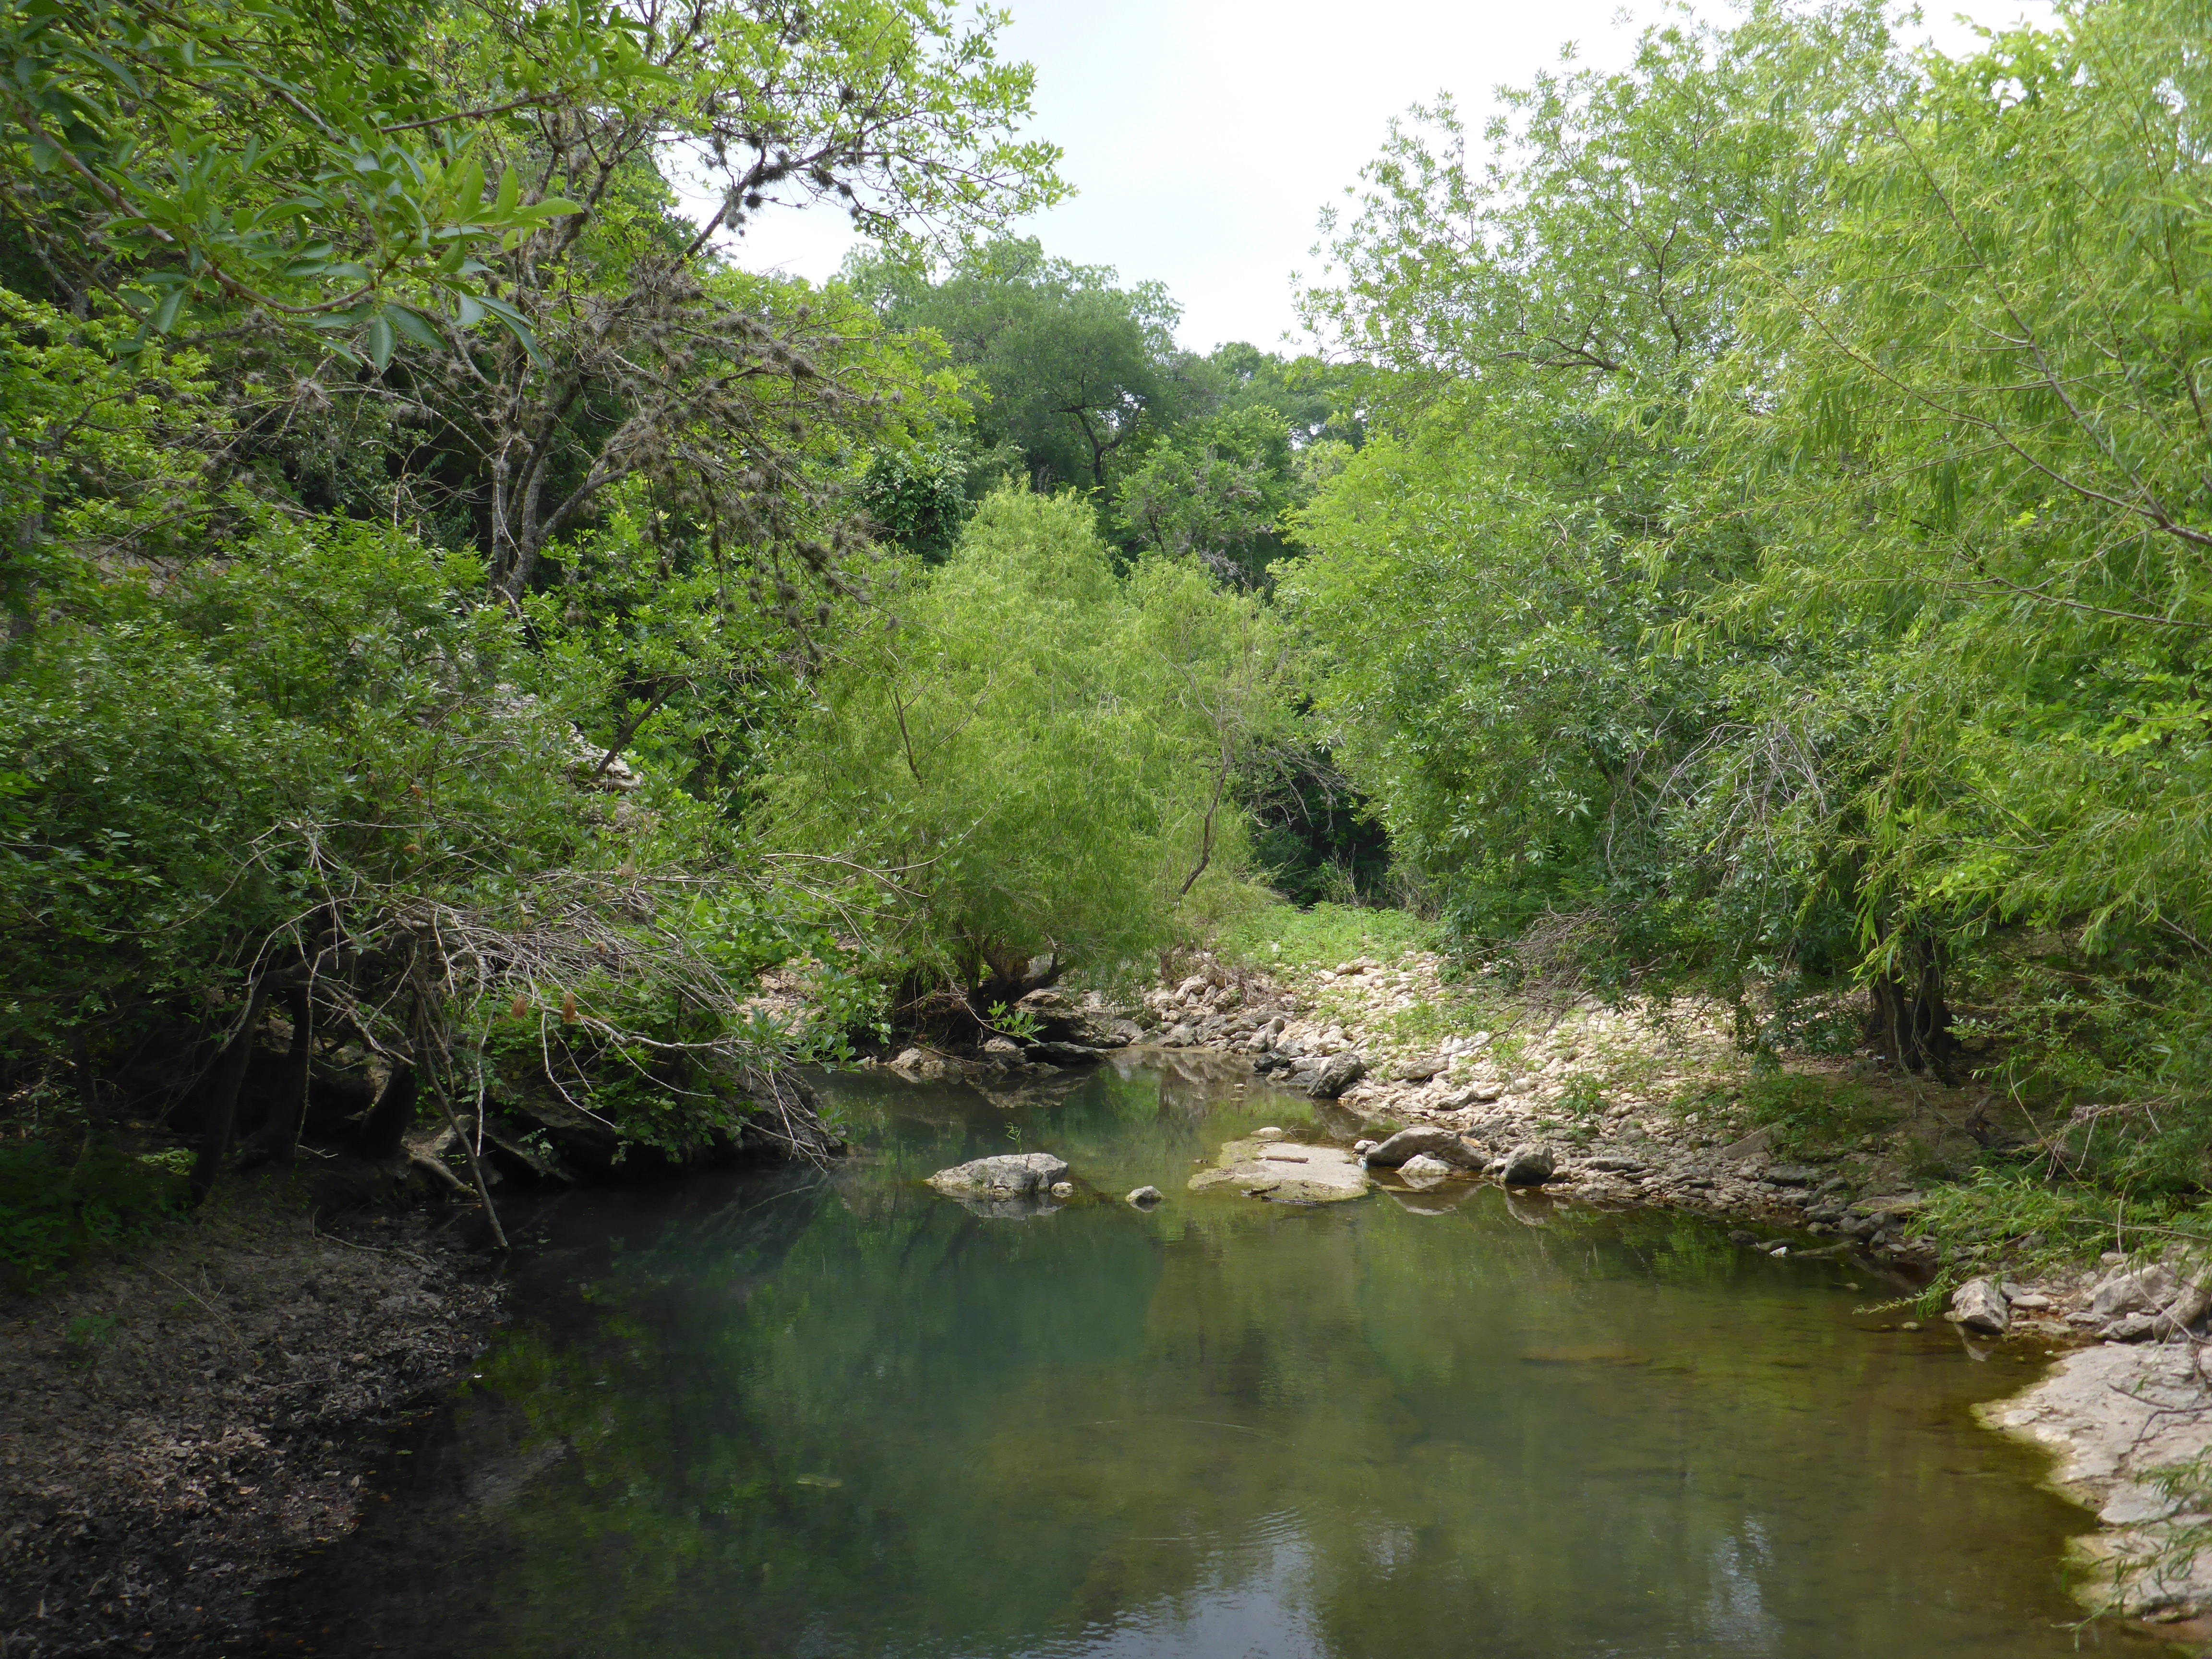 Greenbelt earthrobert for Shoal creek